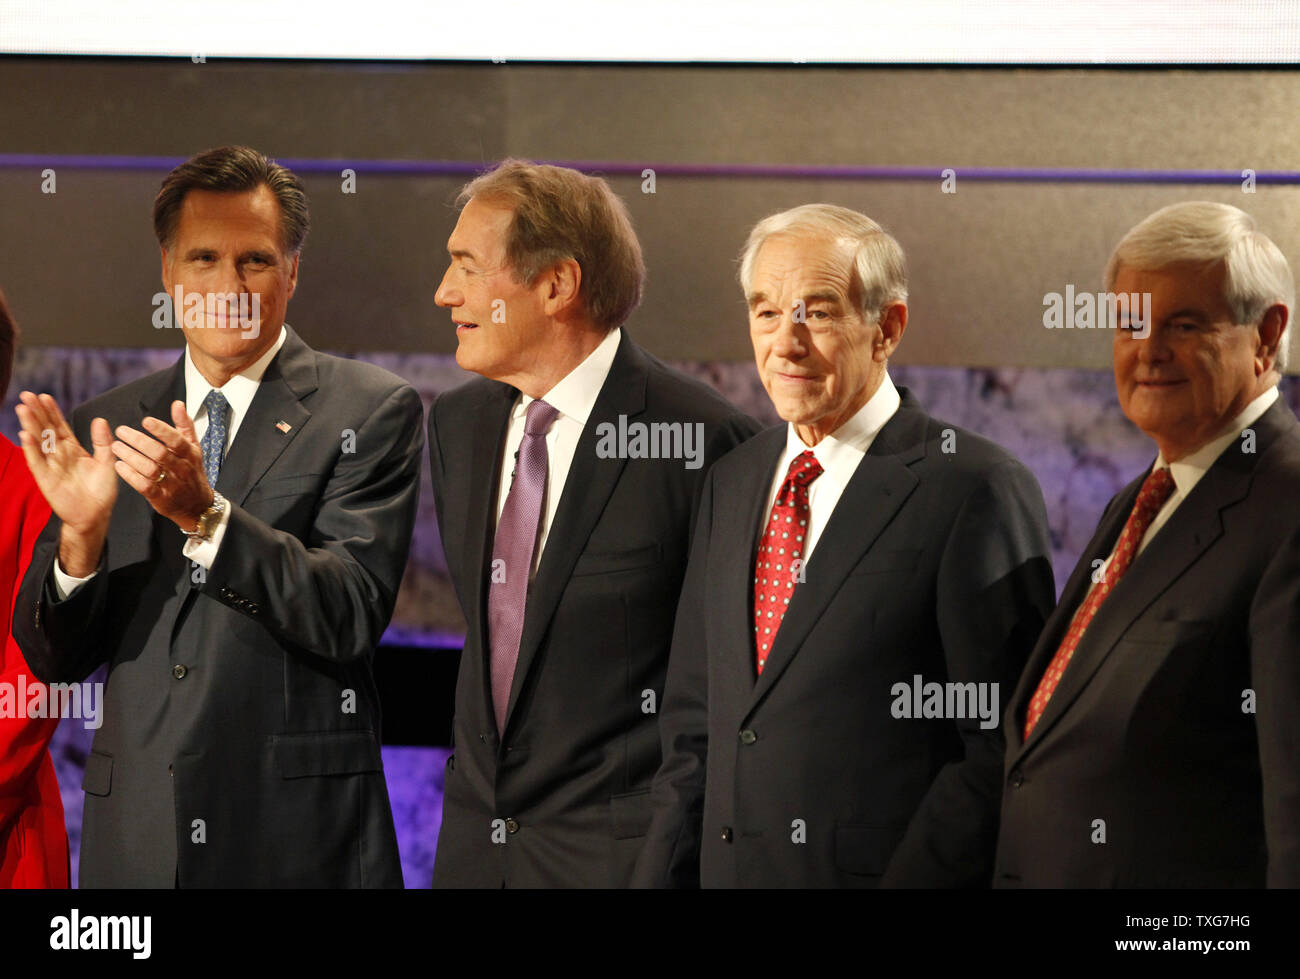 From left, republican candidate for US President and former Massachusetts Governor Mitt Romney, debate moderator Charlie Rose, presidential candidate Texas Representative Ron Paul, and candidate former house speaker Newt Gingrich, line up for a photo-op before the start of the Bloomberg/Washington Post Republican debate inside the Spaulding Auditorium at Dartmouth College in Hanover New Hampshire on October 11, 2011.    UPI/Matthew Healey Stock Photo